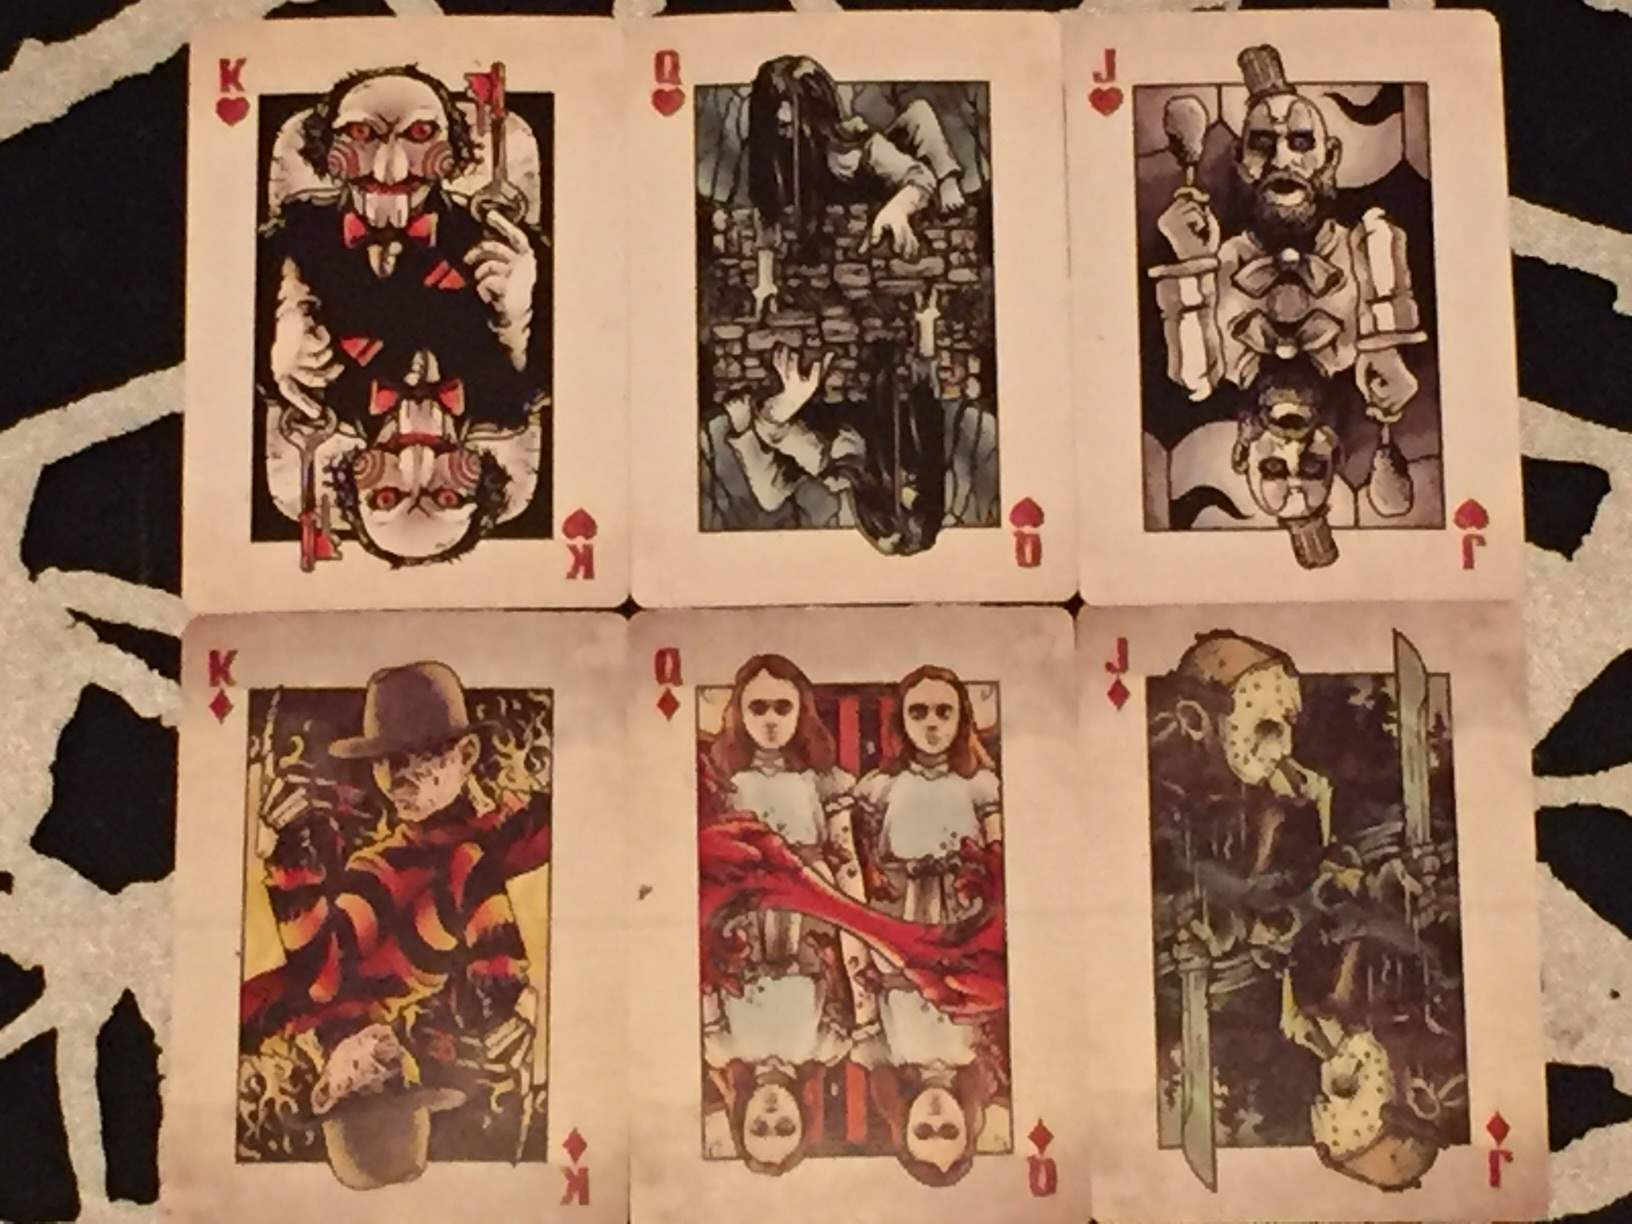 Two sets of face cards in the deck of playing cards included in February 2016's Horror Block